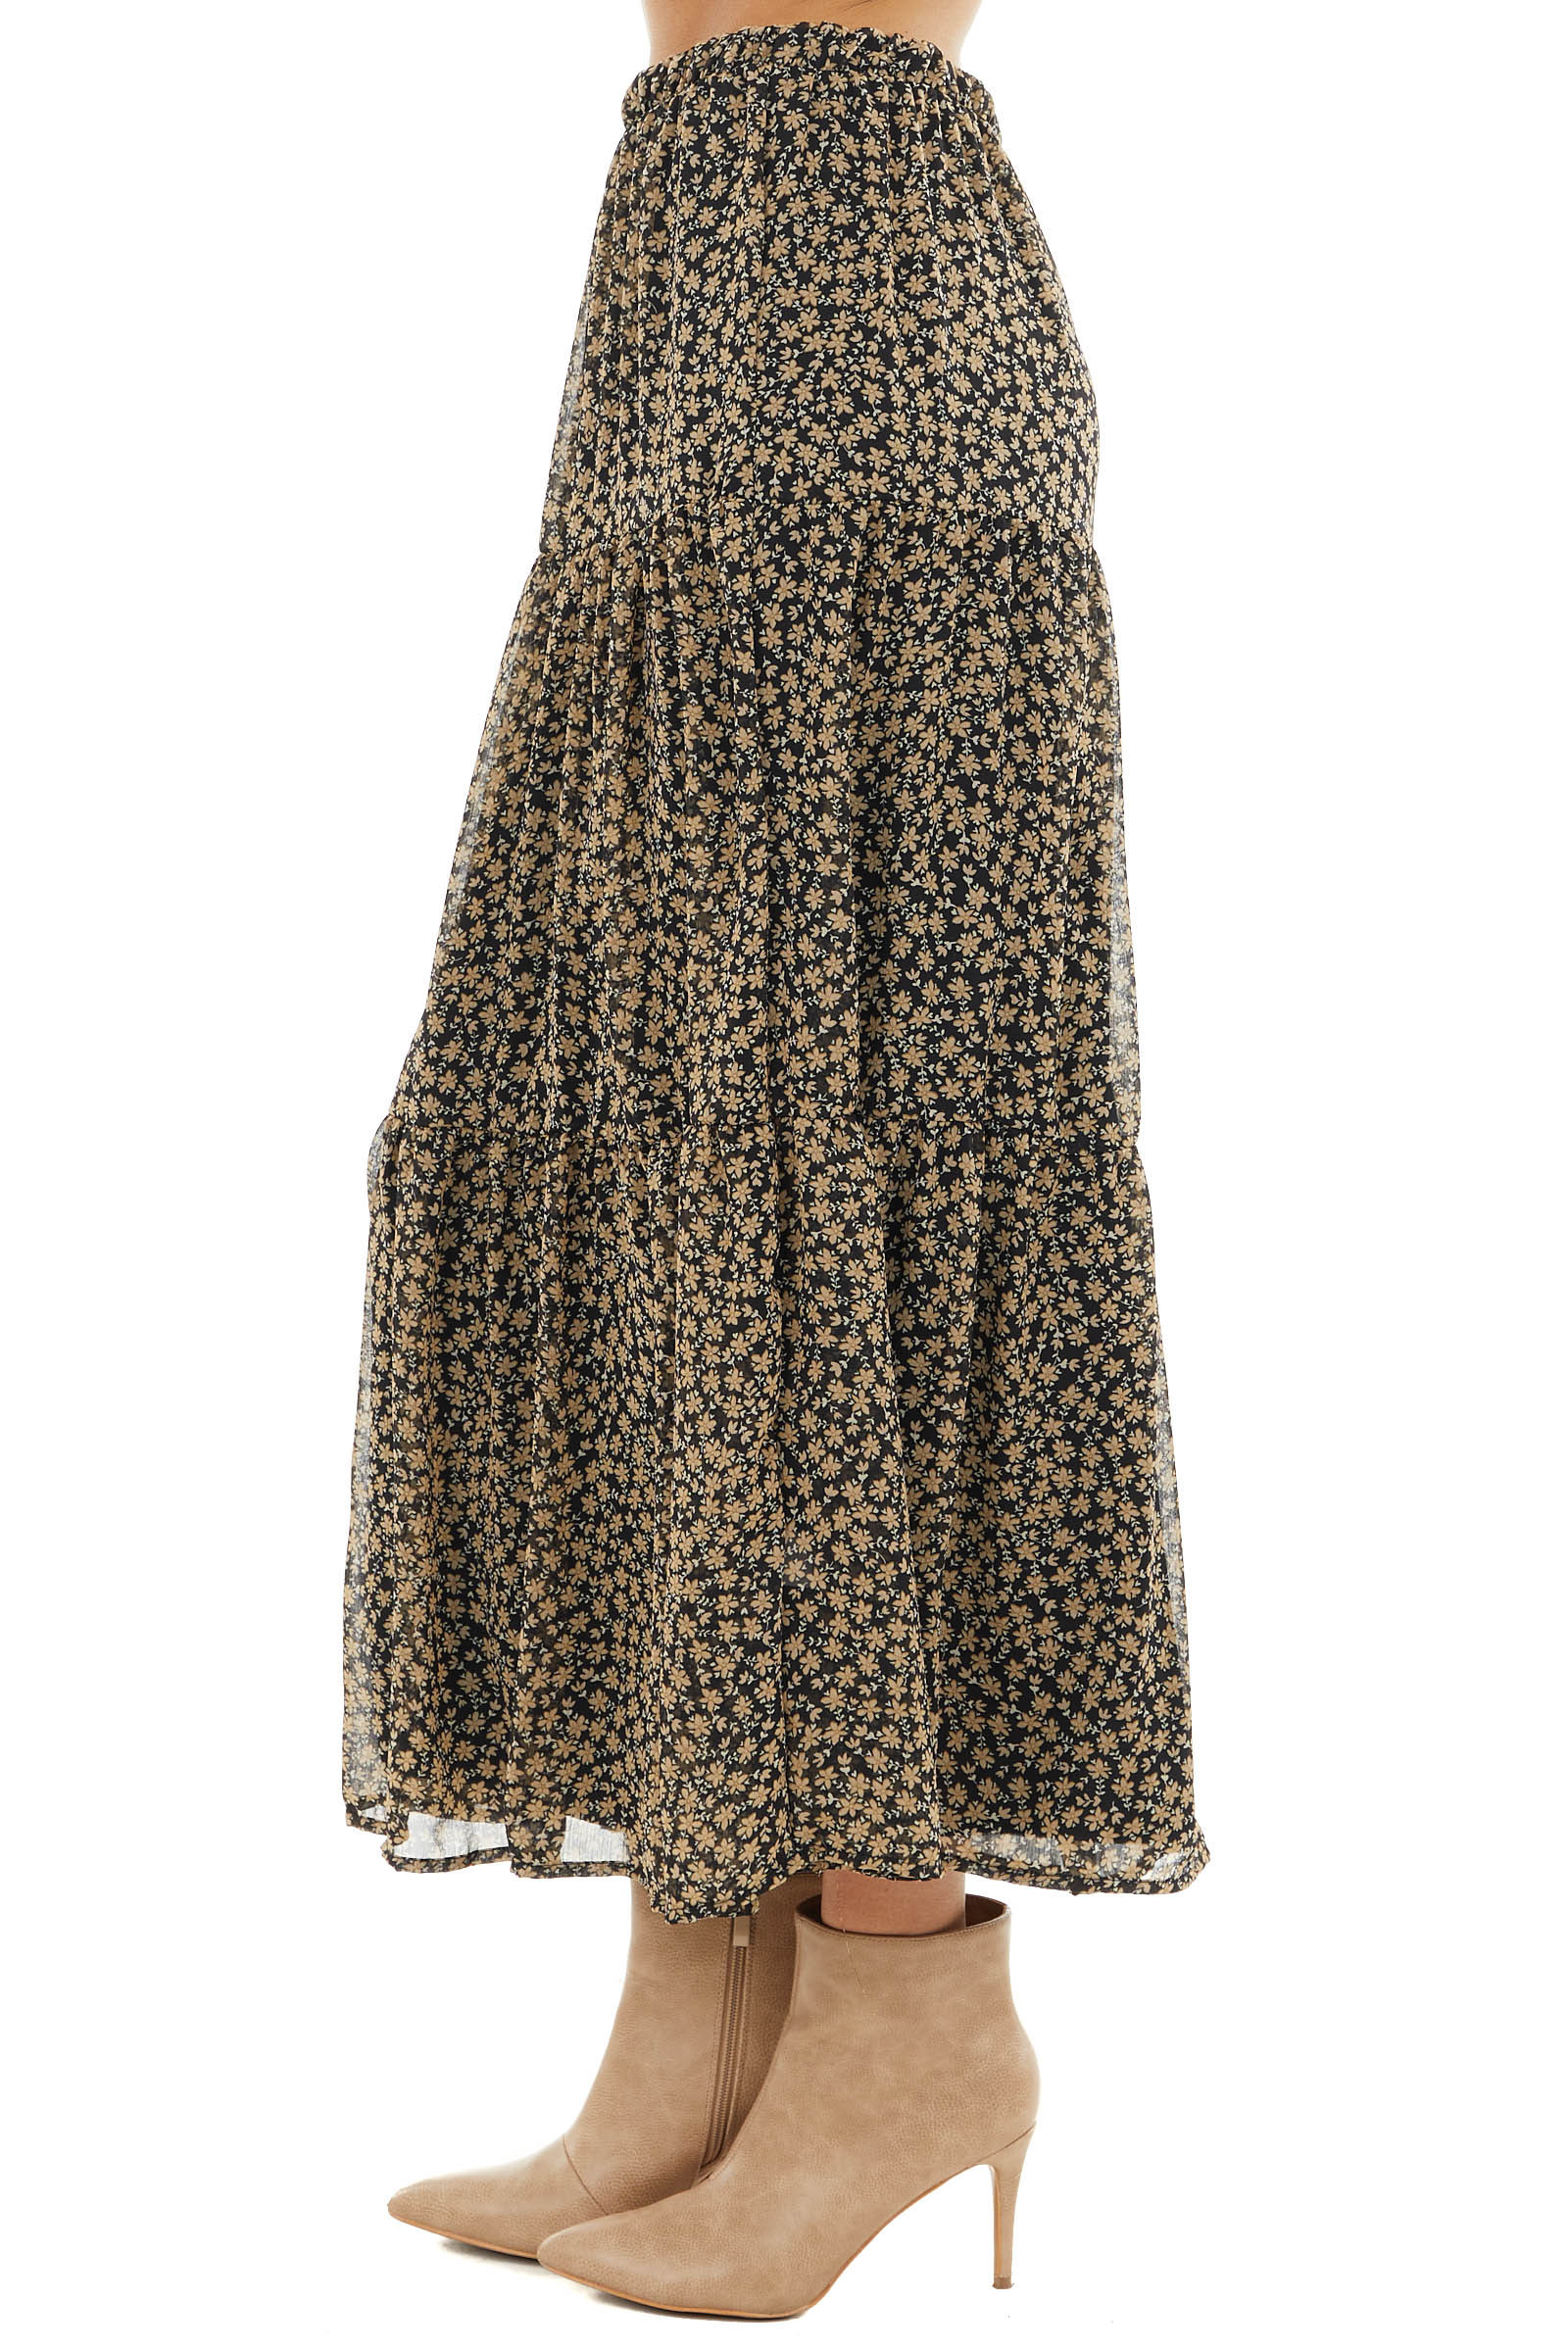 Black Floral Print Chiffon Tiered Maxi Skirt with Lining